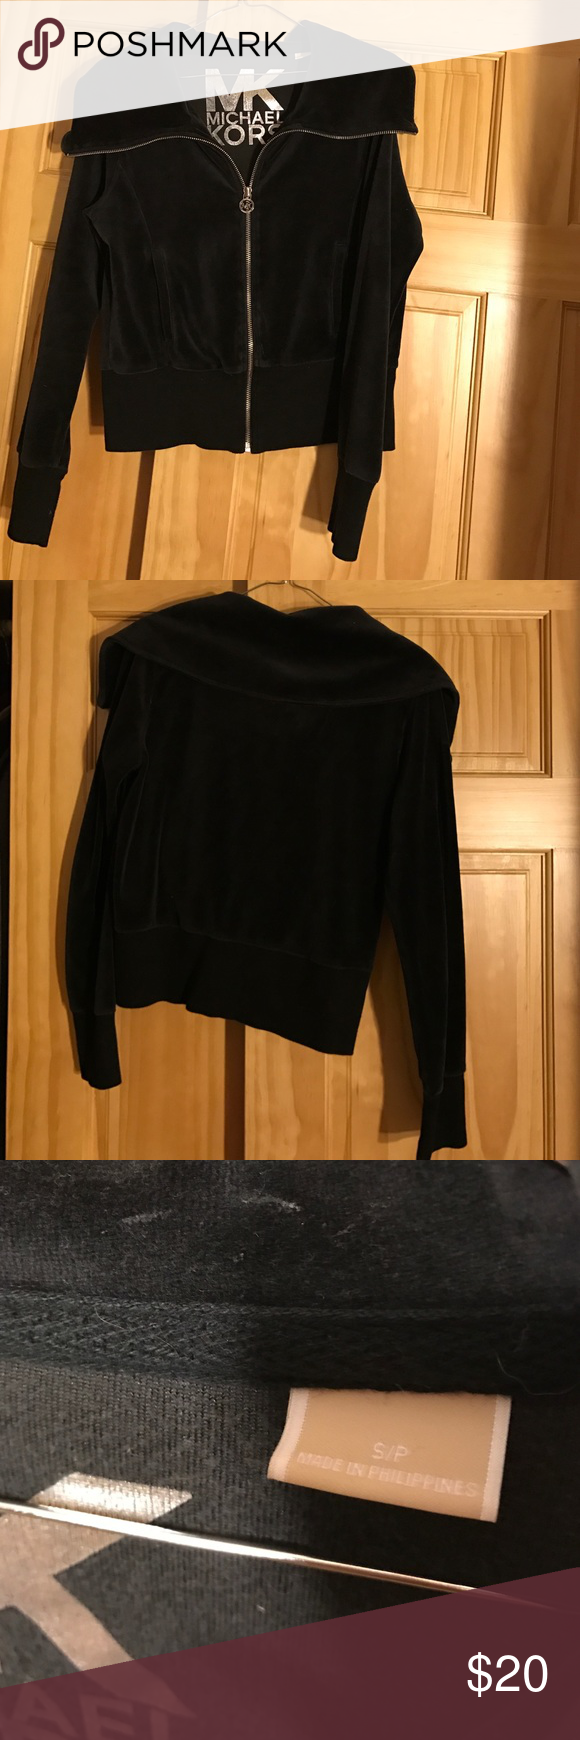 MK MICHAEL Michael Kors Black Velour Track Jacket MK Michael Kors Black Velour Track Jacket. Size Small. Large collar no hoodie. Used - gently.PLEASE MAKE OFFERS THROUGH OFFER FEATURE 😊 MICHAEL Michael Kors Tops Sweatshirts & Hoodies